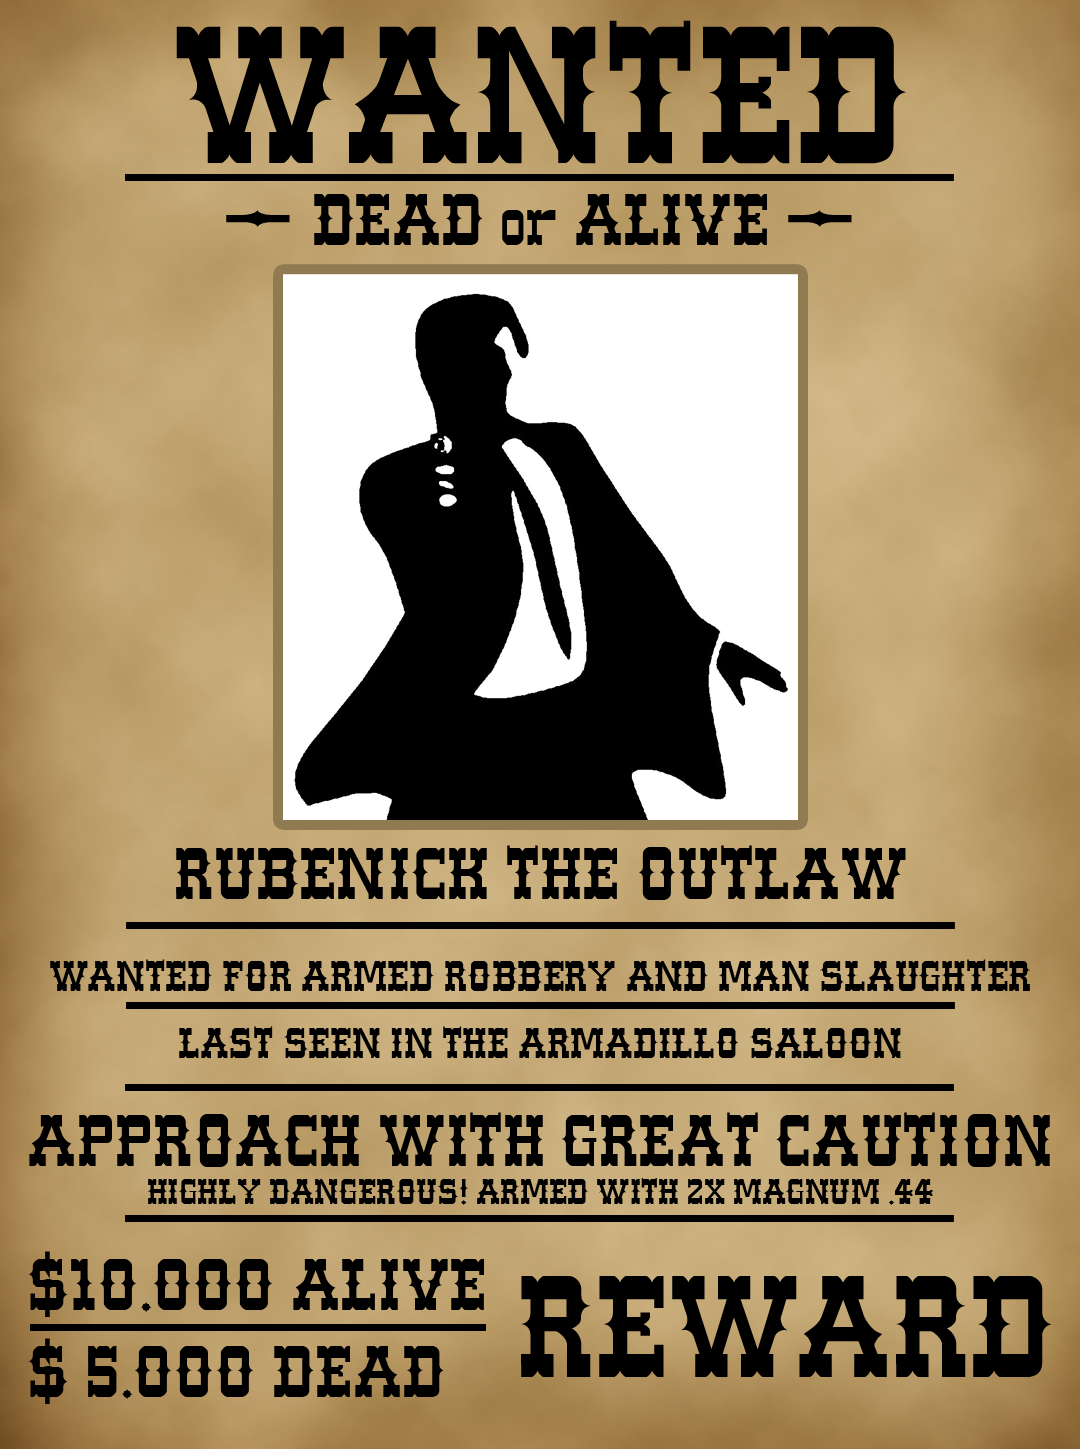 Wanted Person Poster Template   PosterMyWall